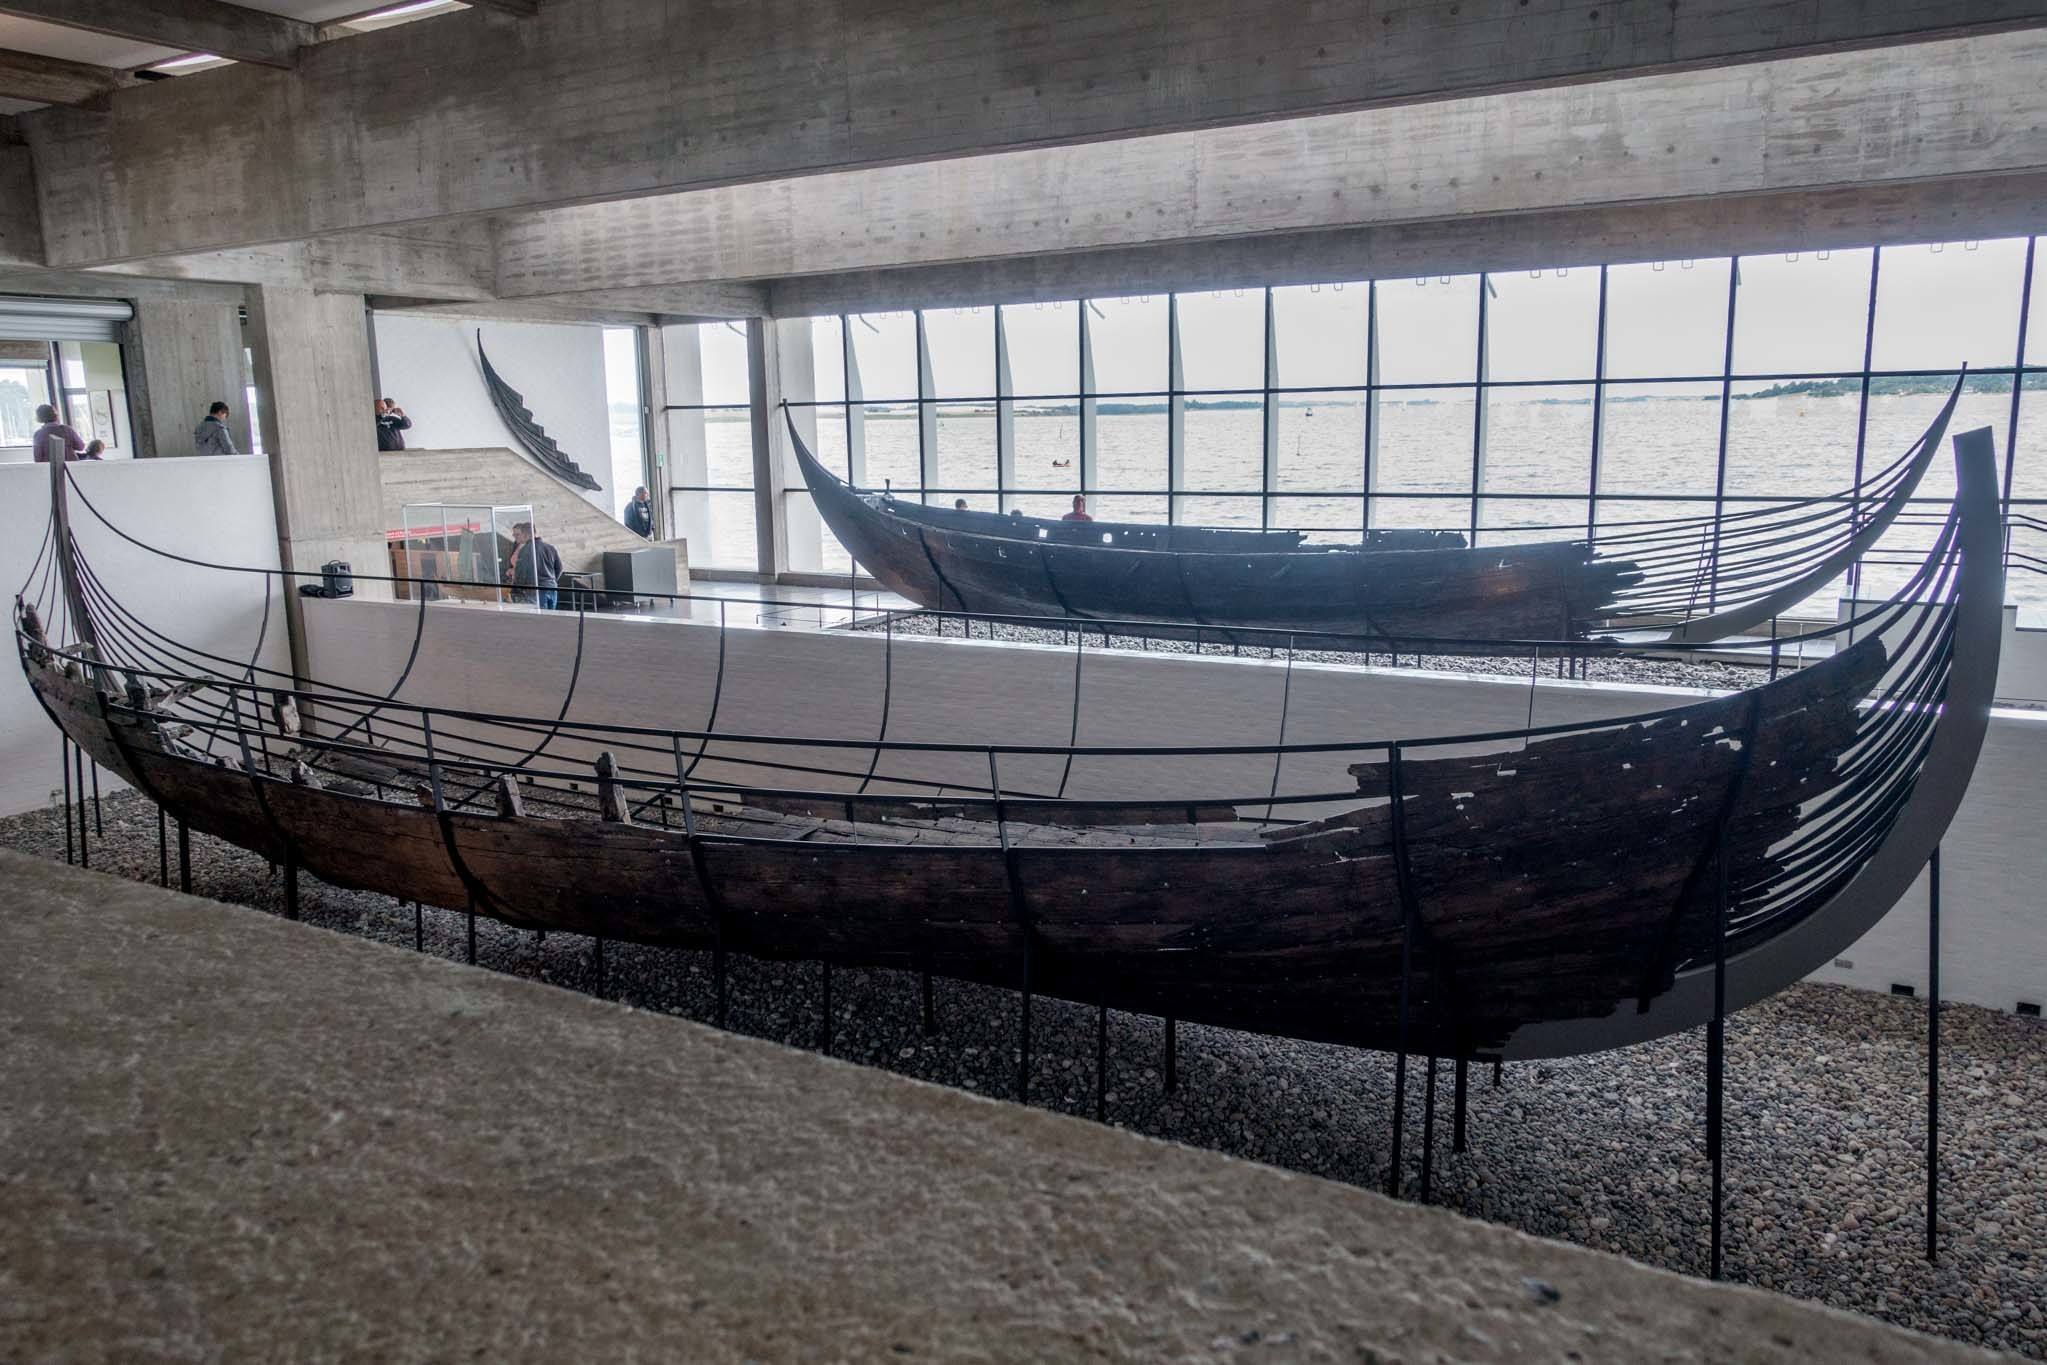 Remains of two wooden Viking ships